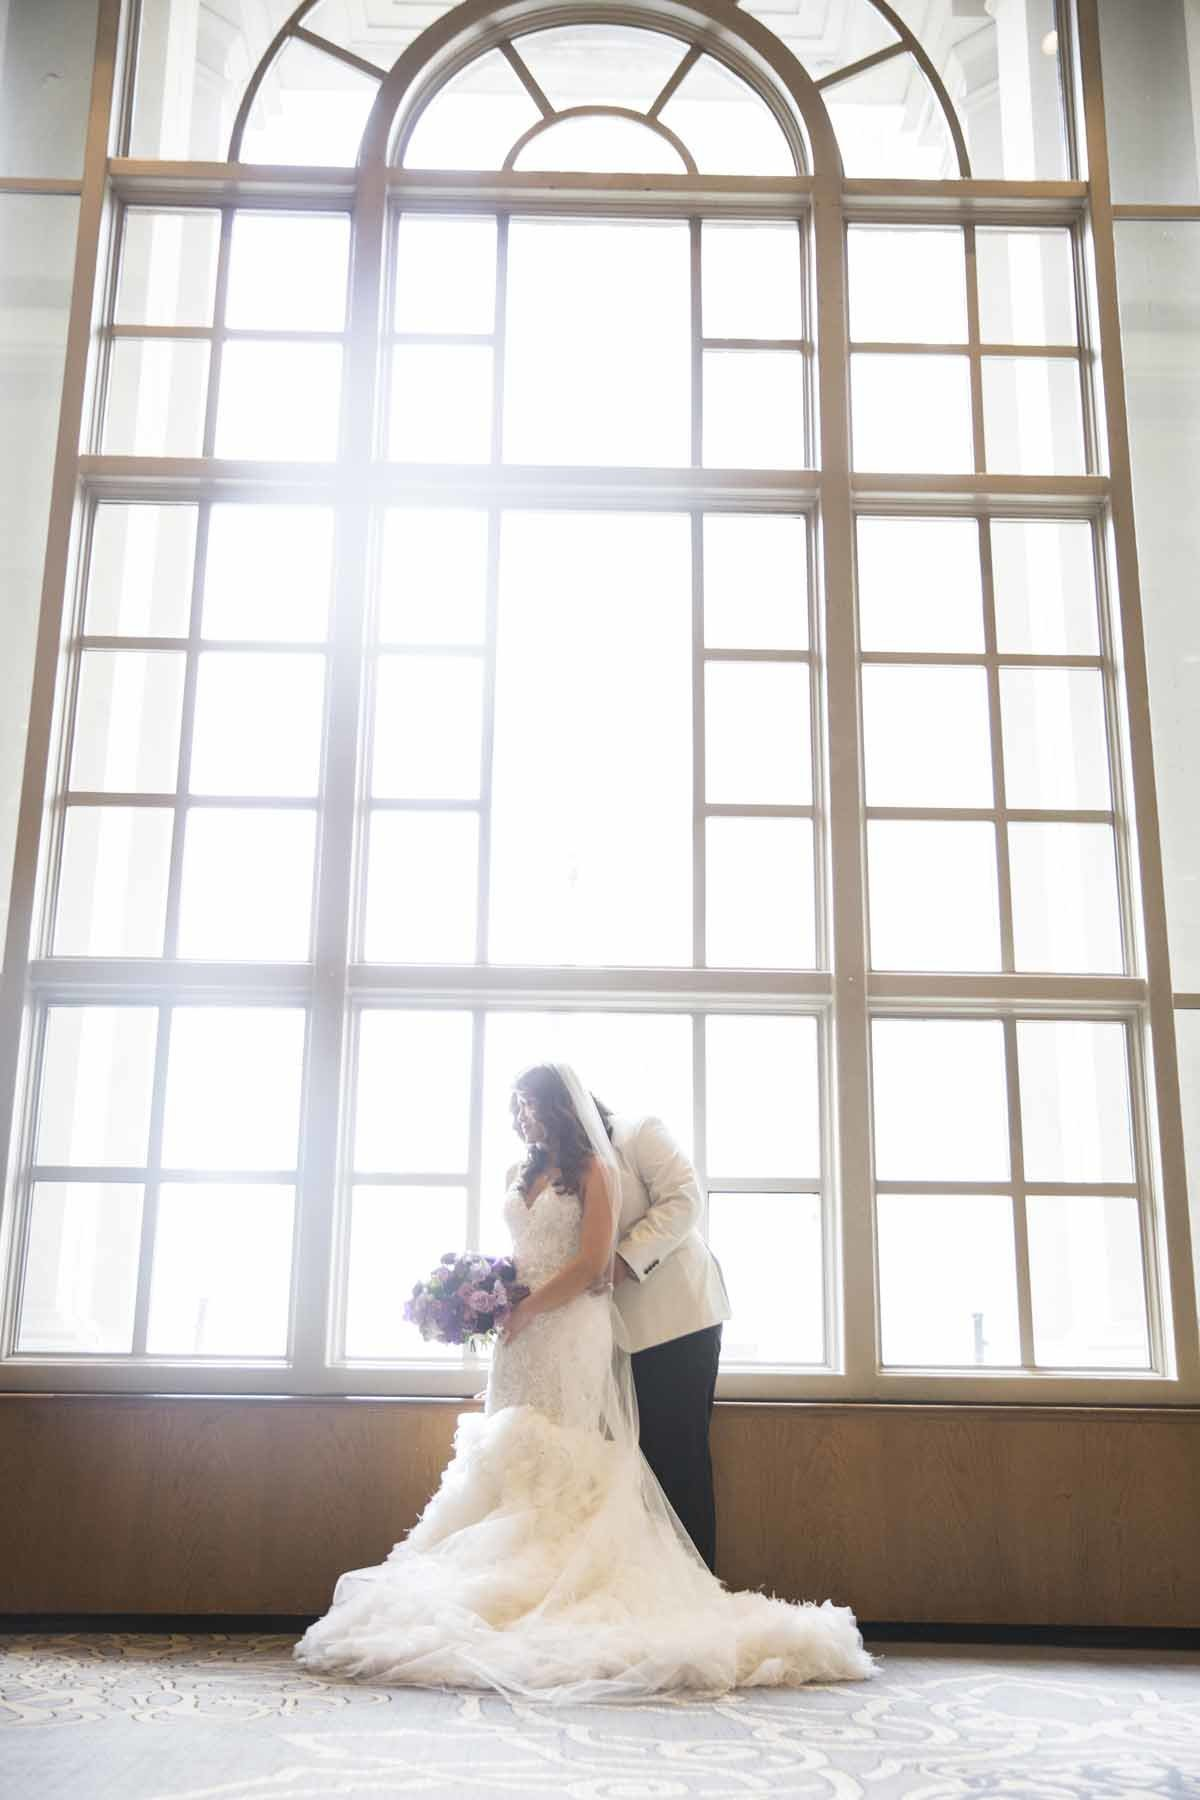 Our bride and groom posing in the sunlight.